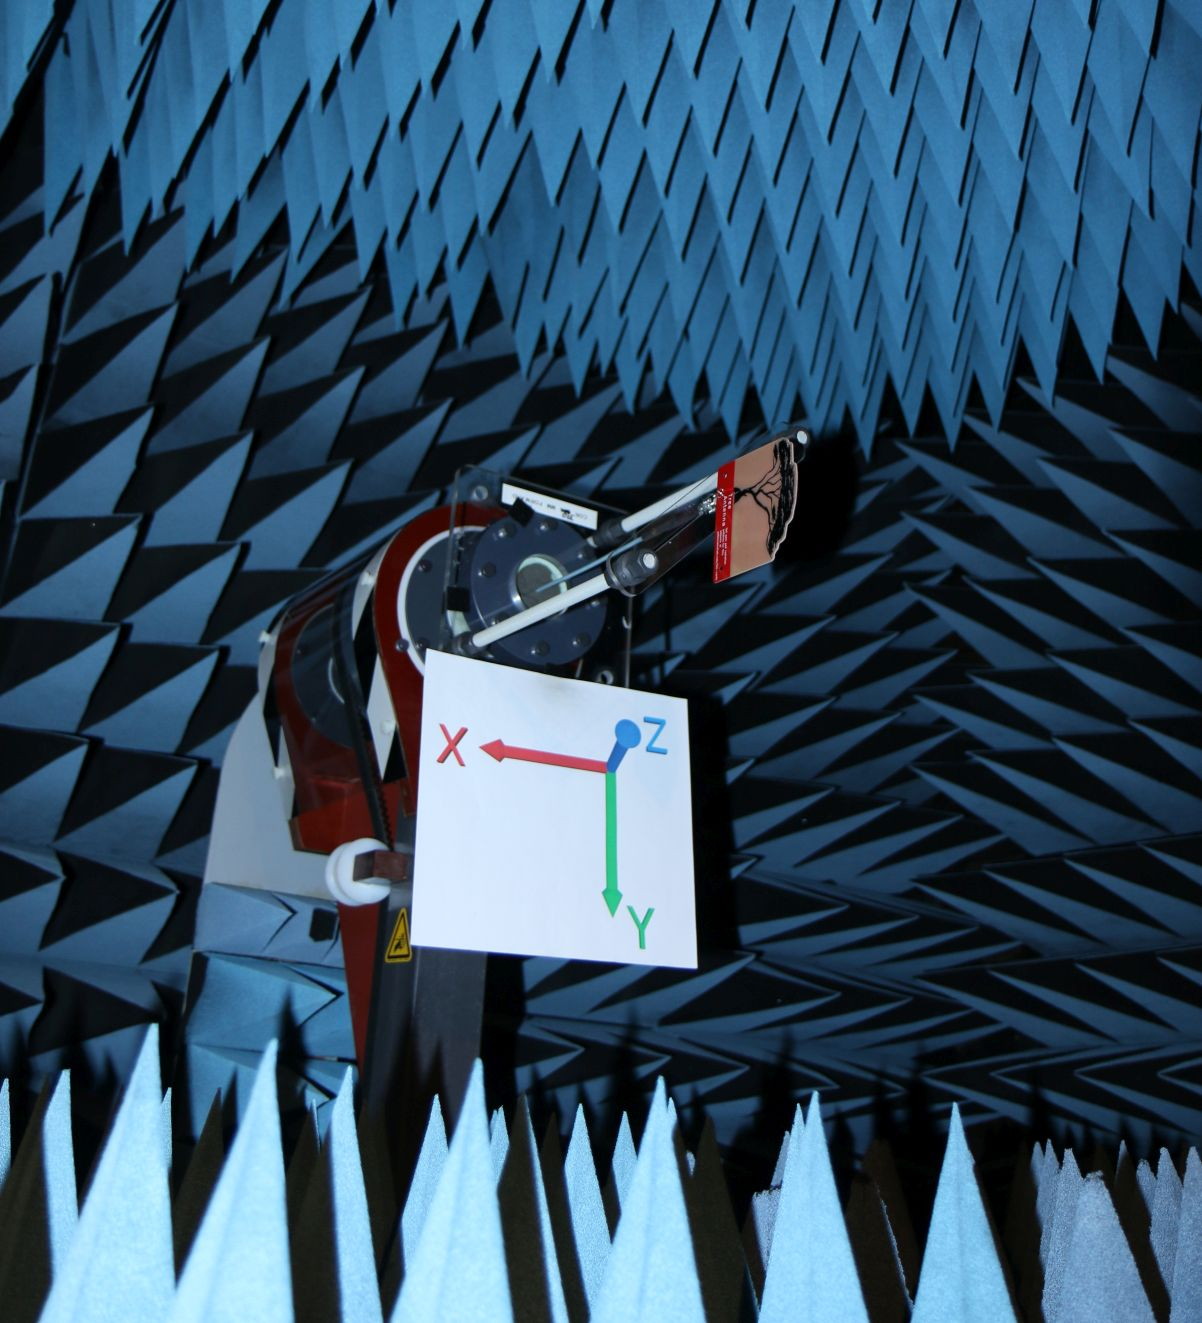 PCB0048A Tree Shape Antenna Tested in Anechoic Chamber 3D Spherical Radiation Pattern Gain in dBi 2